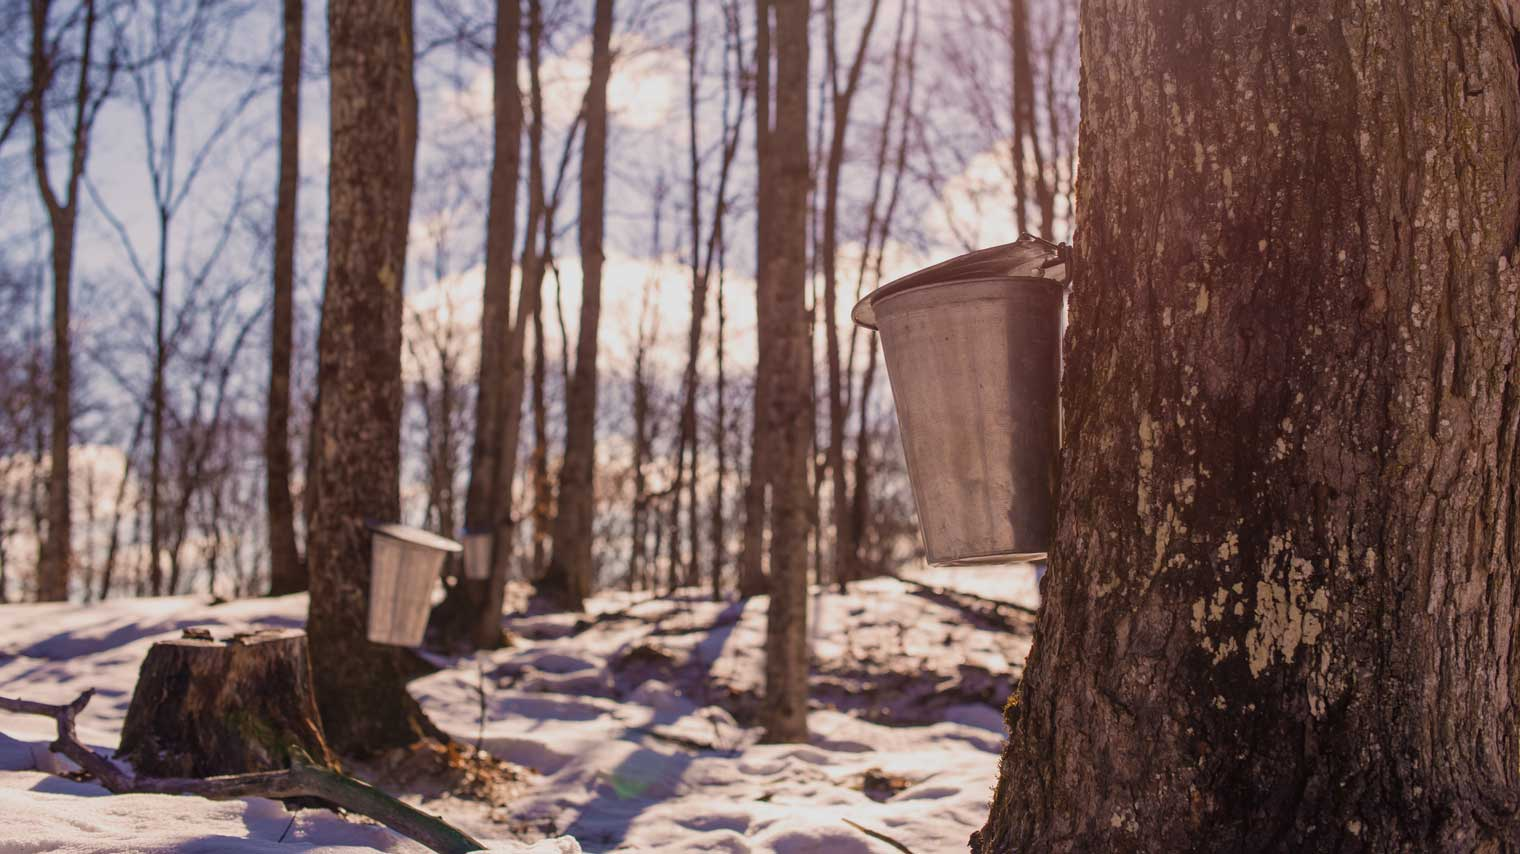 Our 24-hour maple adventure in Muskoka